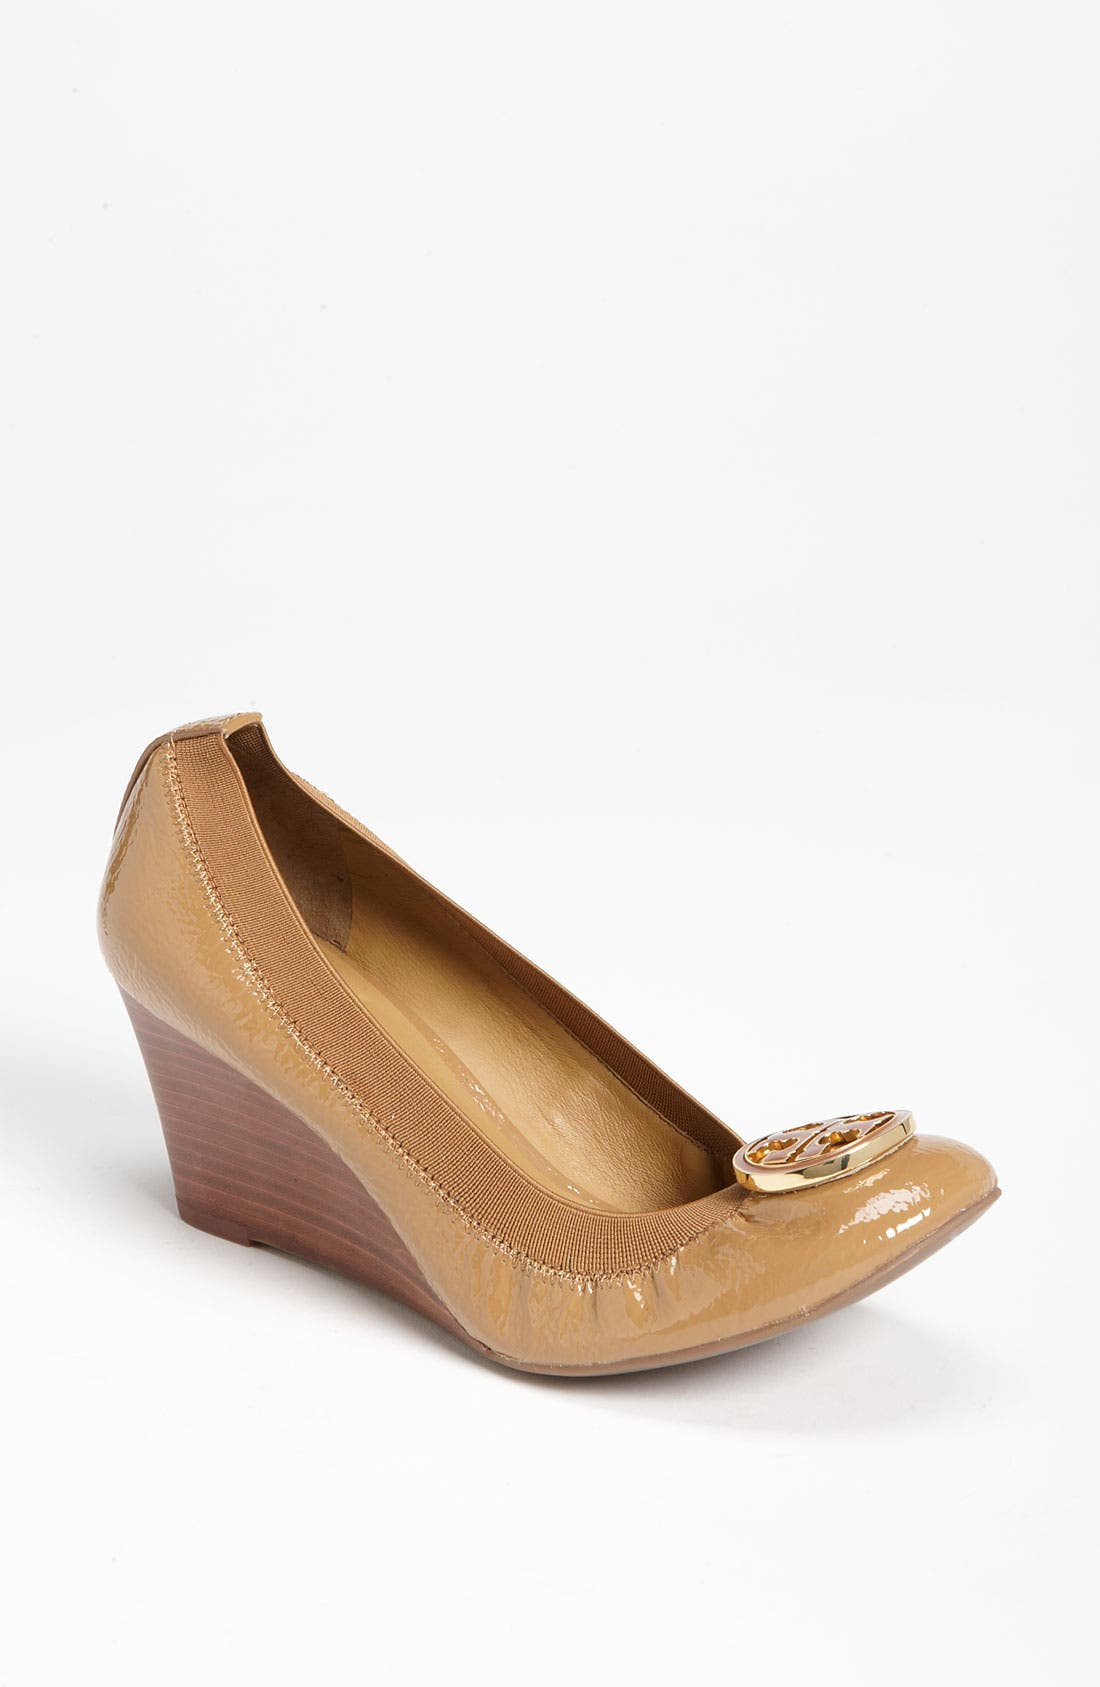 Alternate Image 1 Selected - Tory Burch 'Caroline' Wedge